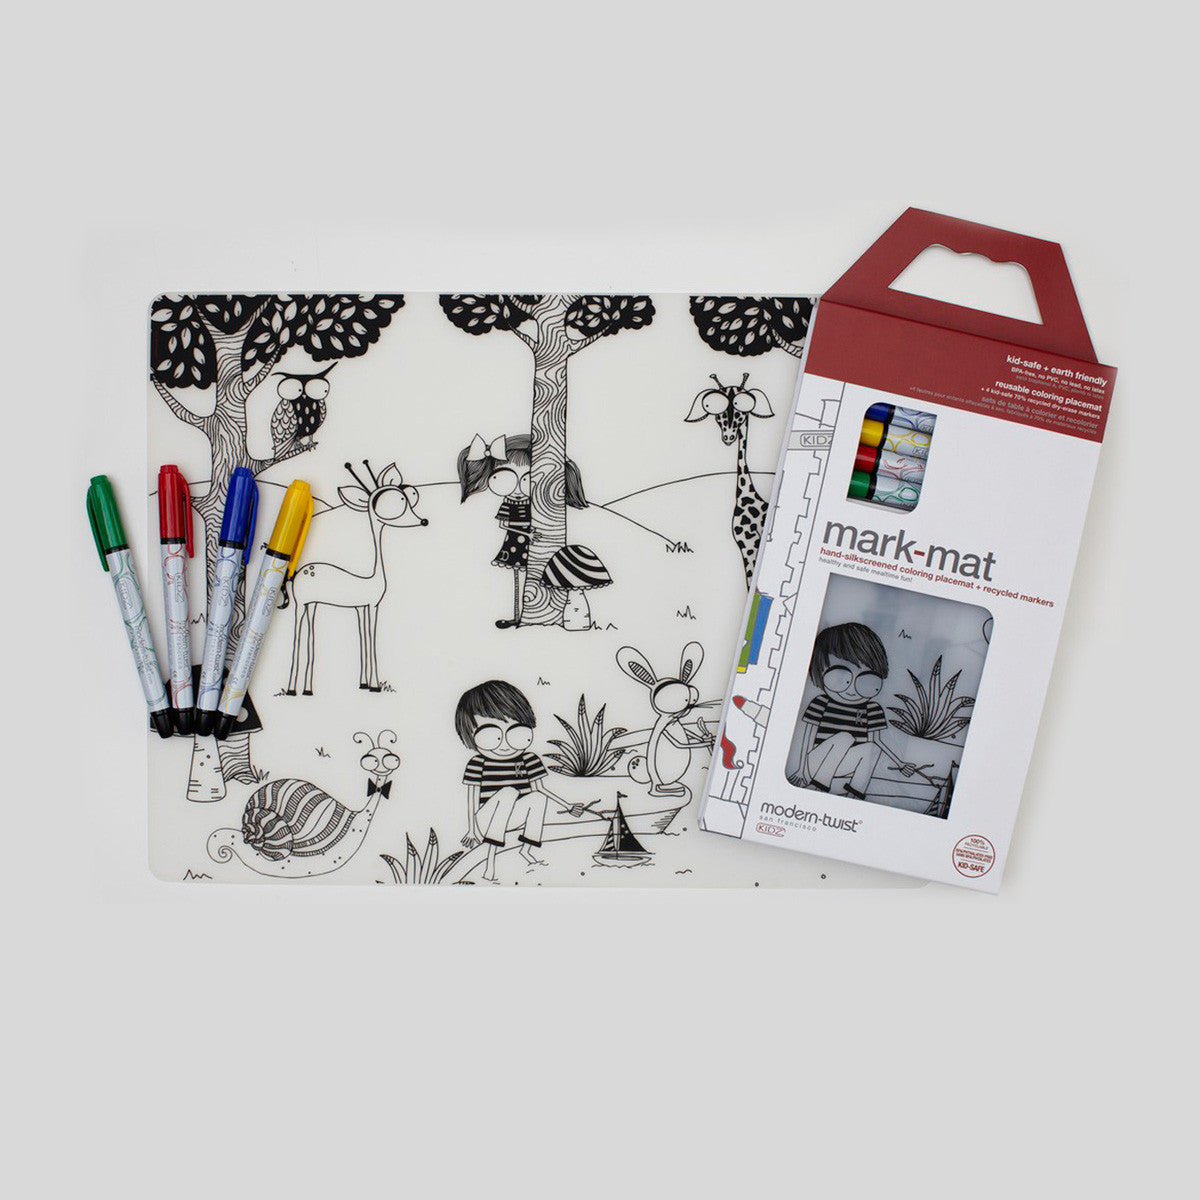 modern twist  mark mat placemat with markers – bon genre - modern twist  mark mat placemat with markers